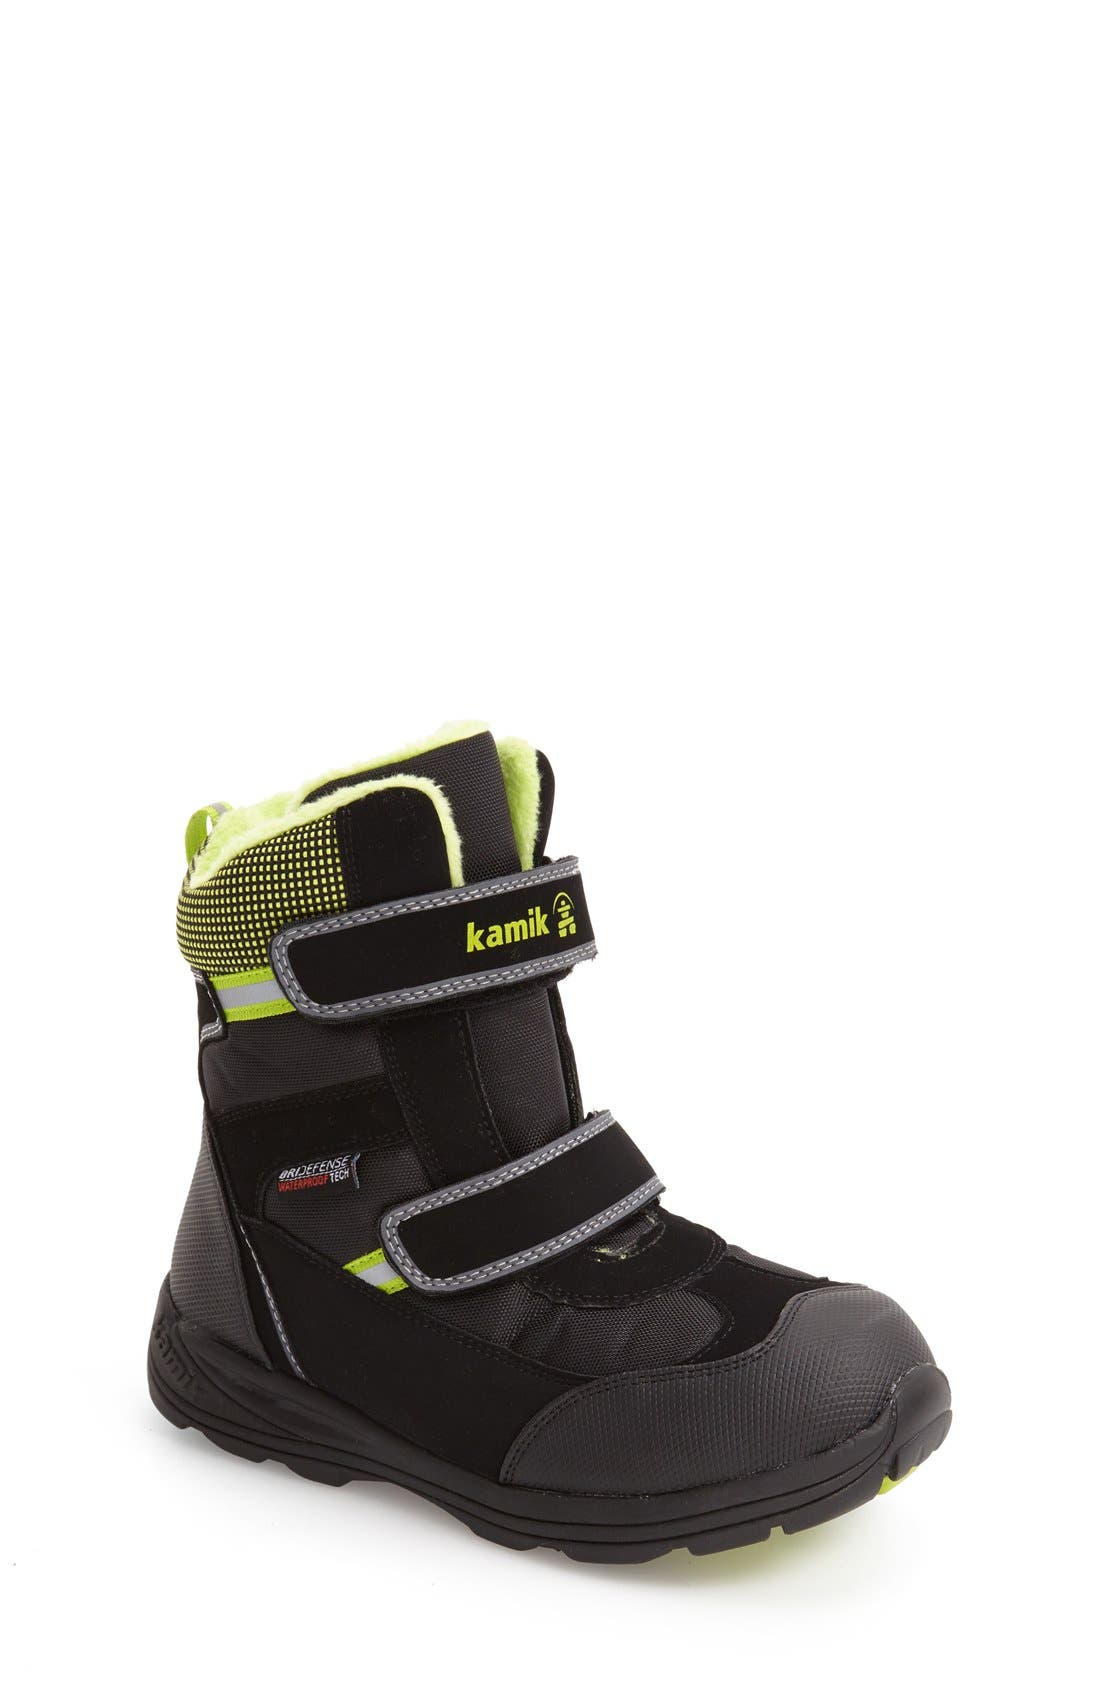 Slate Snow Boot,                             Main thumbnail 1, color,                             010